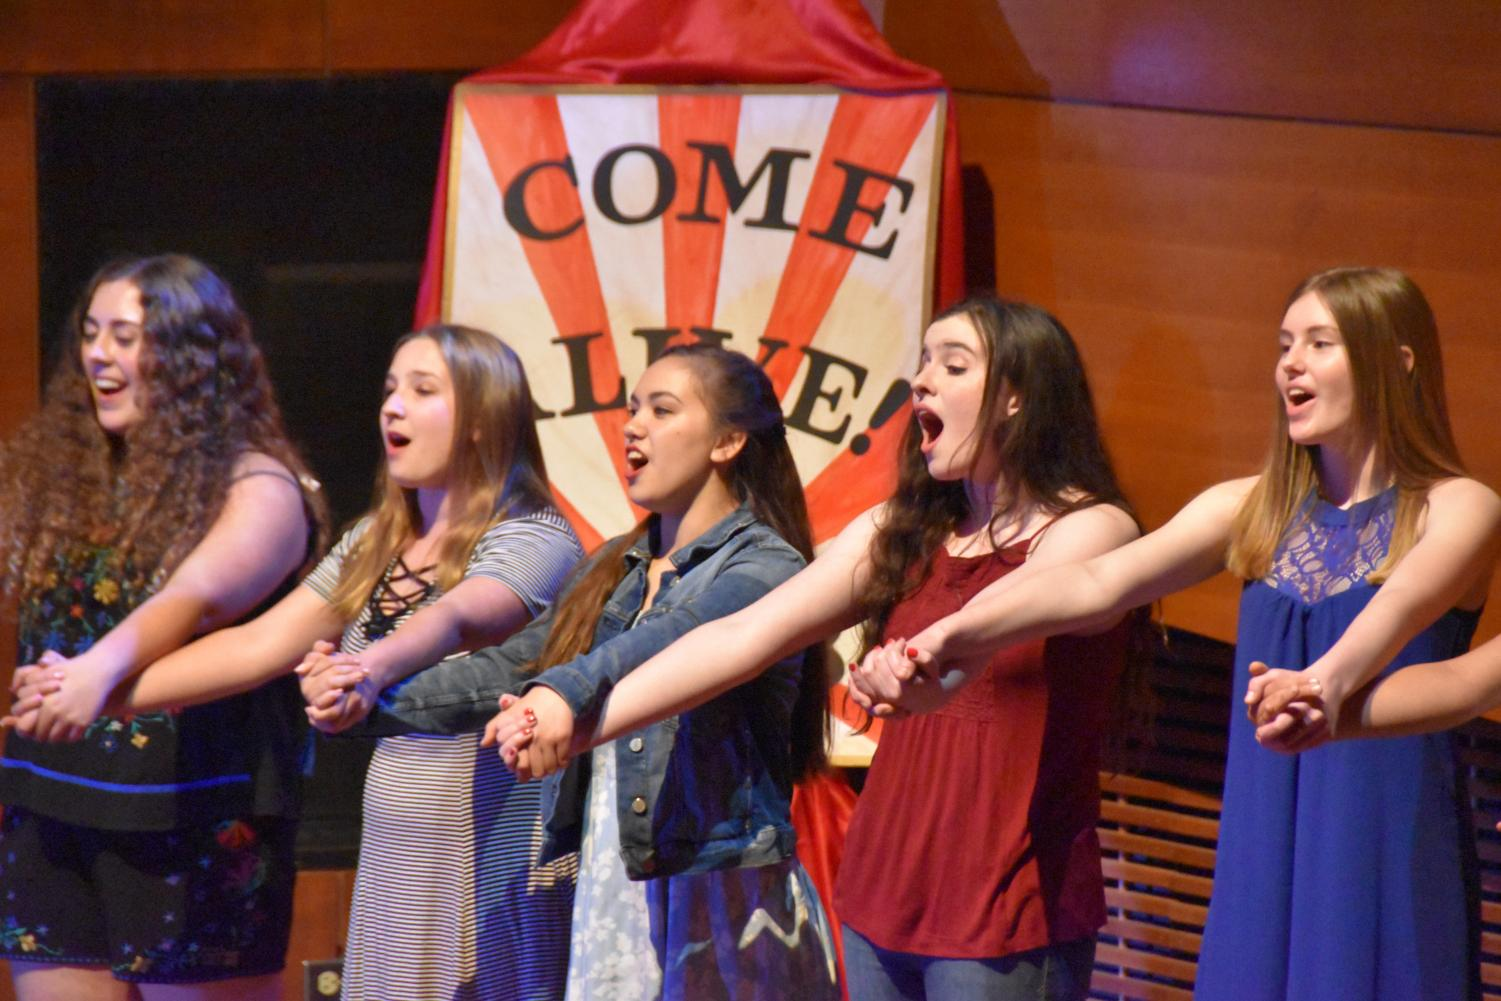 Members of Kalideoscope perform a finale together at the end of the show.